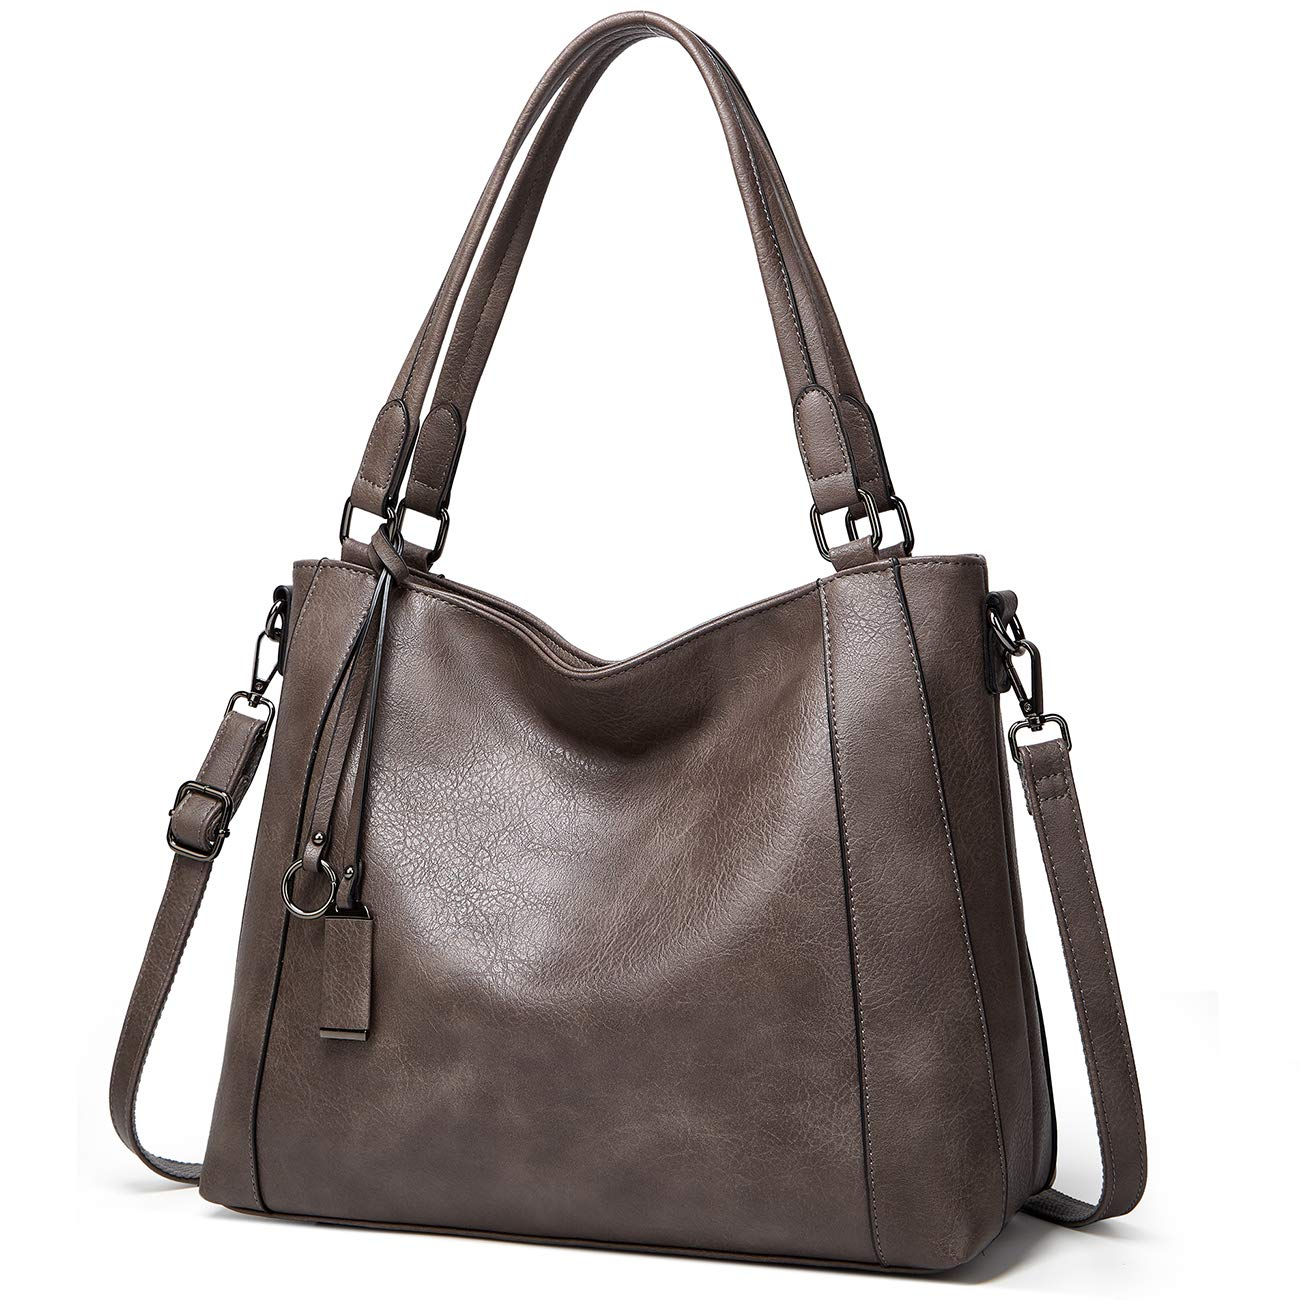 Hobo Bag for Women,VONXURY Faux Leather Purse and Handbag Ladies Shoulder Bag with Detachable Strap